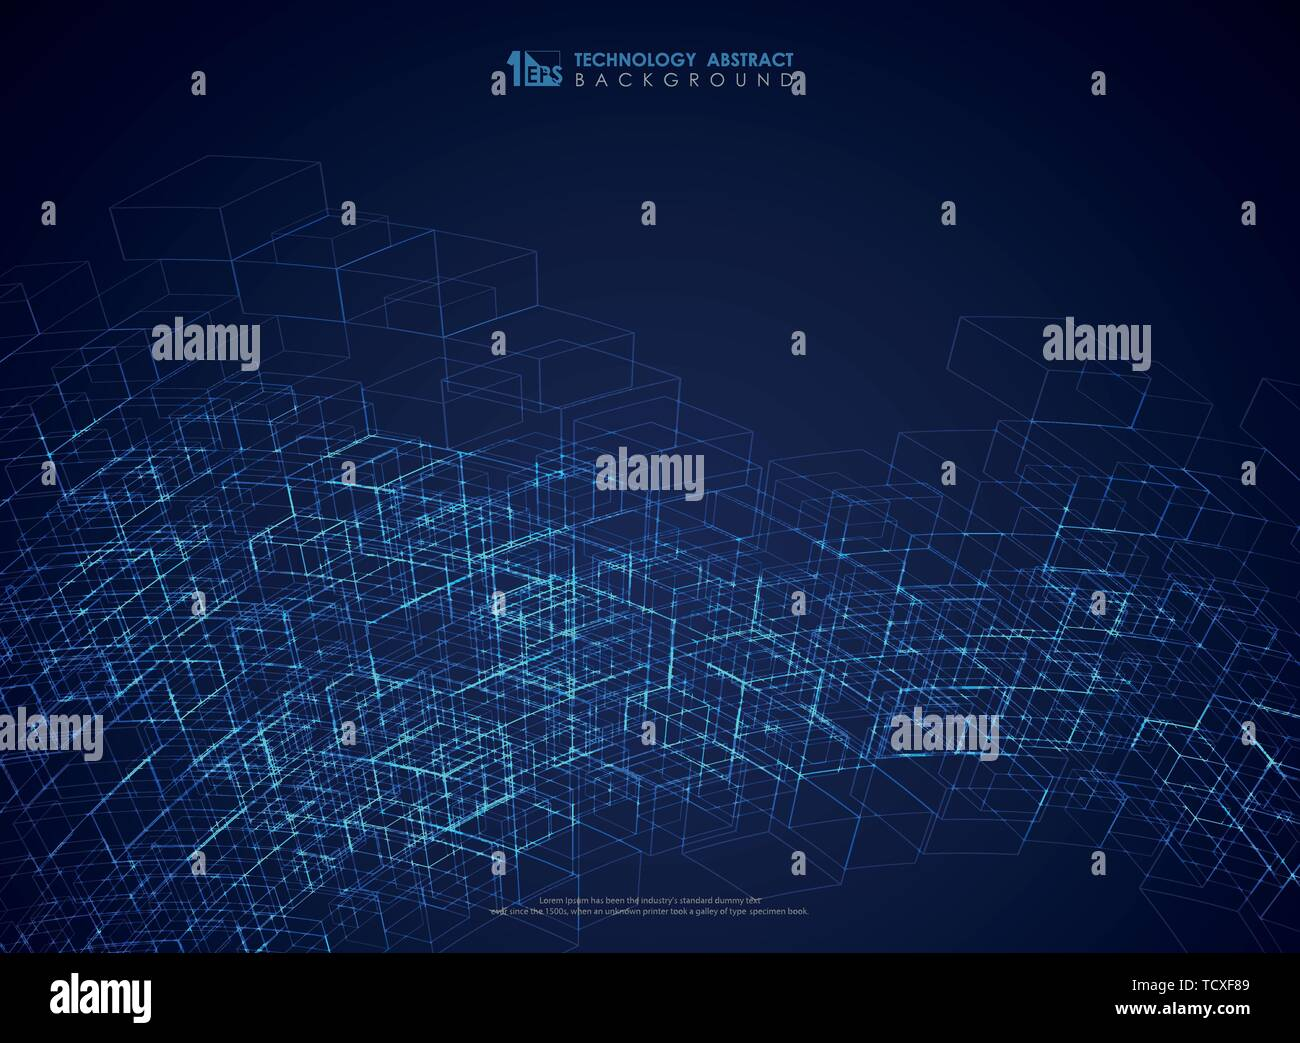 Abstract blue geometric line structure mesh futuristic background. You can use for technology poster, ad, artwork, annual report, cover design. Stock Vector